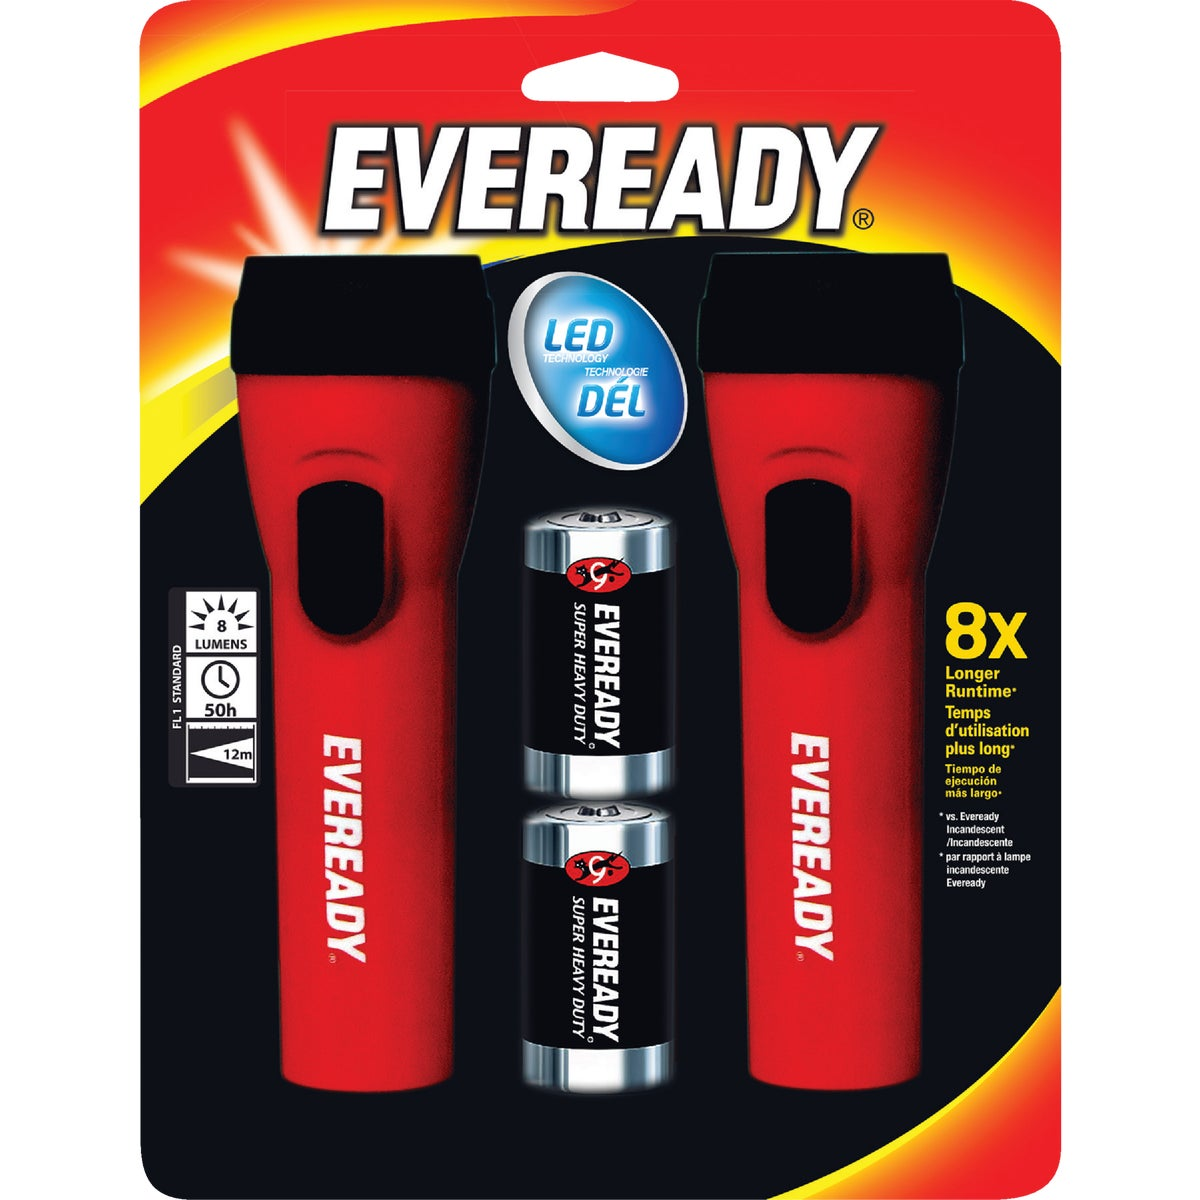 LED W/BATTERY FLASHLIGHT